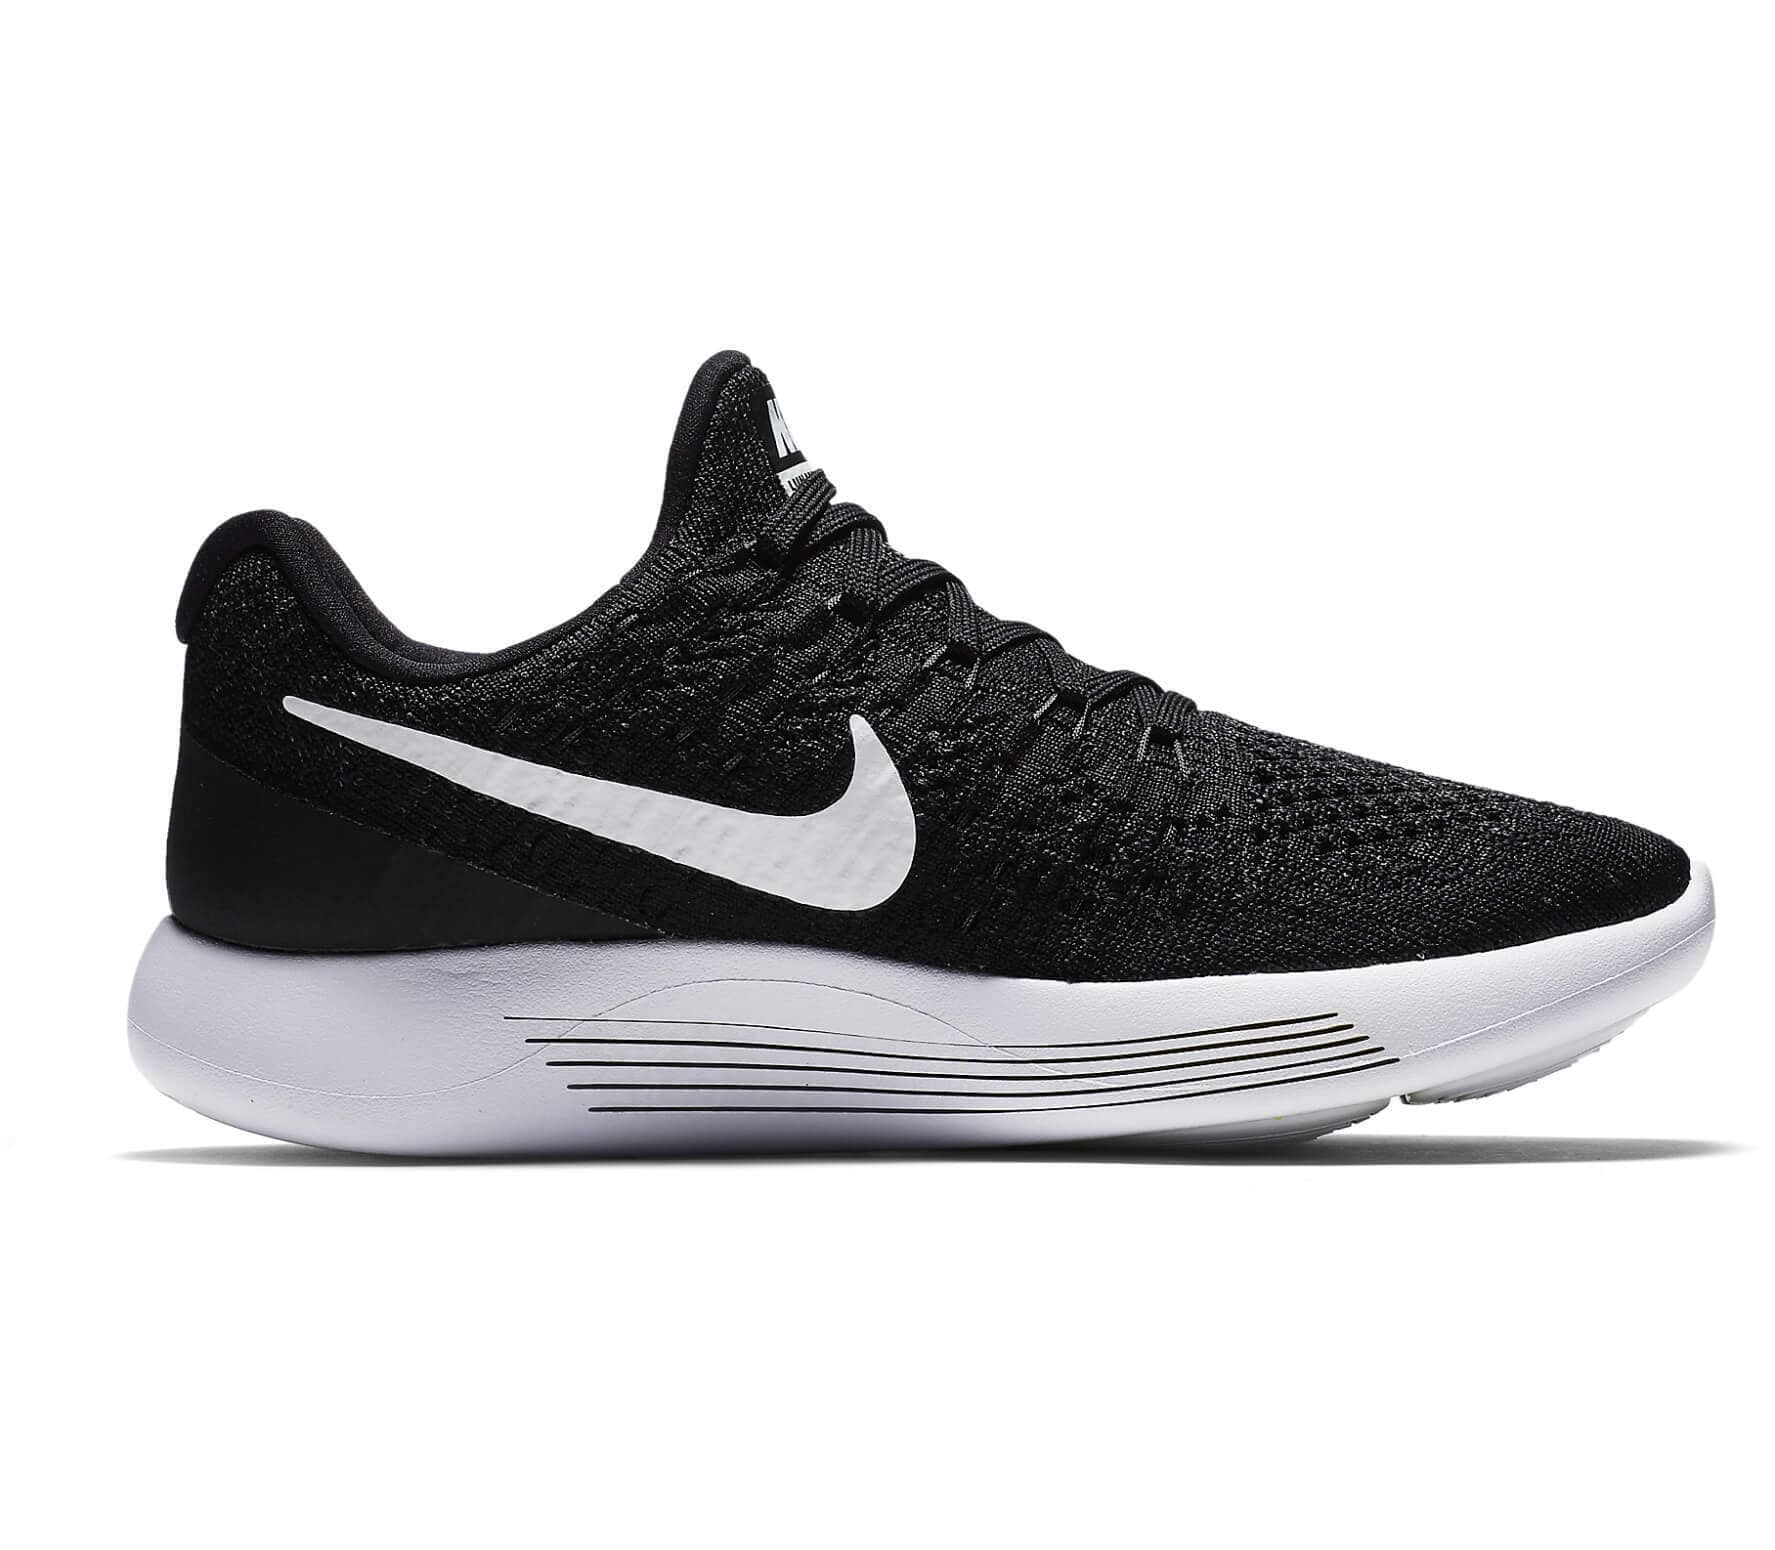 competitive price 5af02 99ac5 Nike - Lunar Epic Low Flyknit 2 chaussures de running pour femmes (noir  blanc